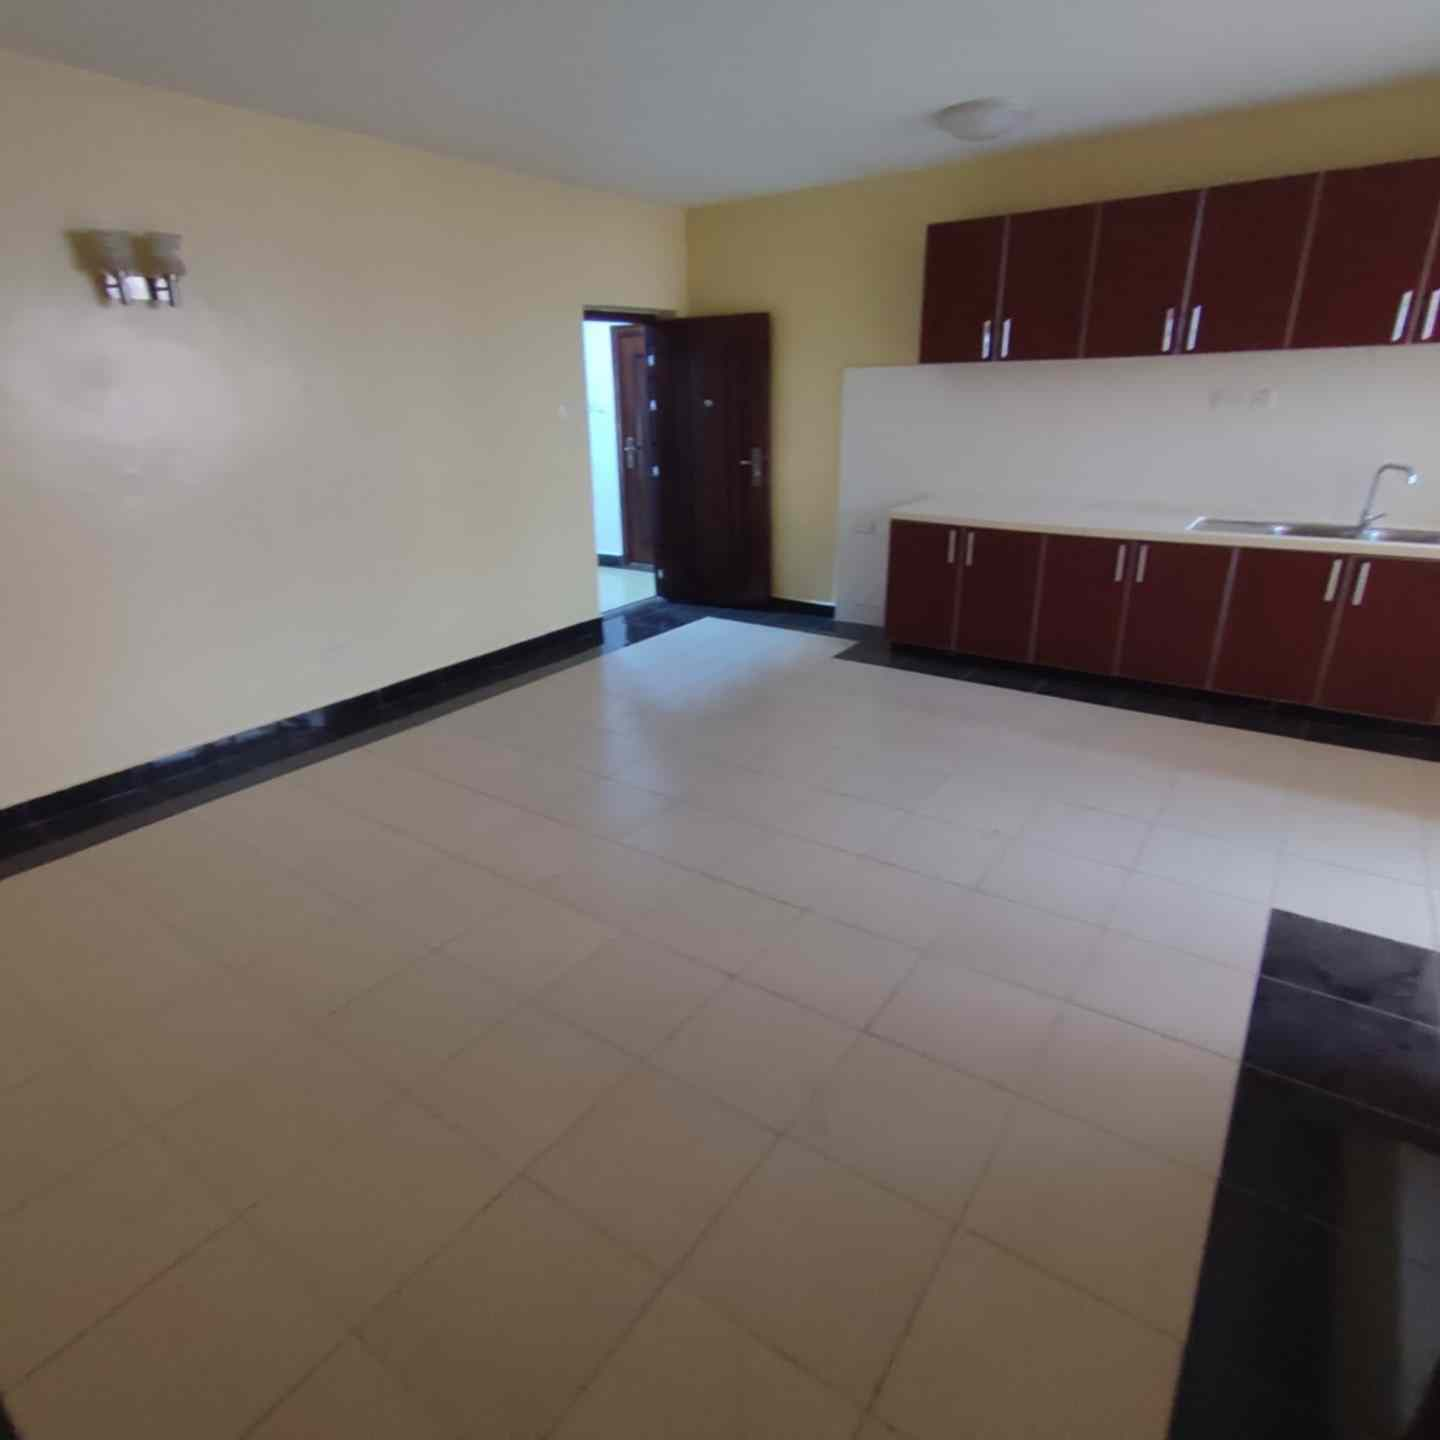 2 bedroom apartment for rent in Kilimani near Yaya Centre